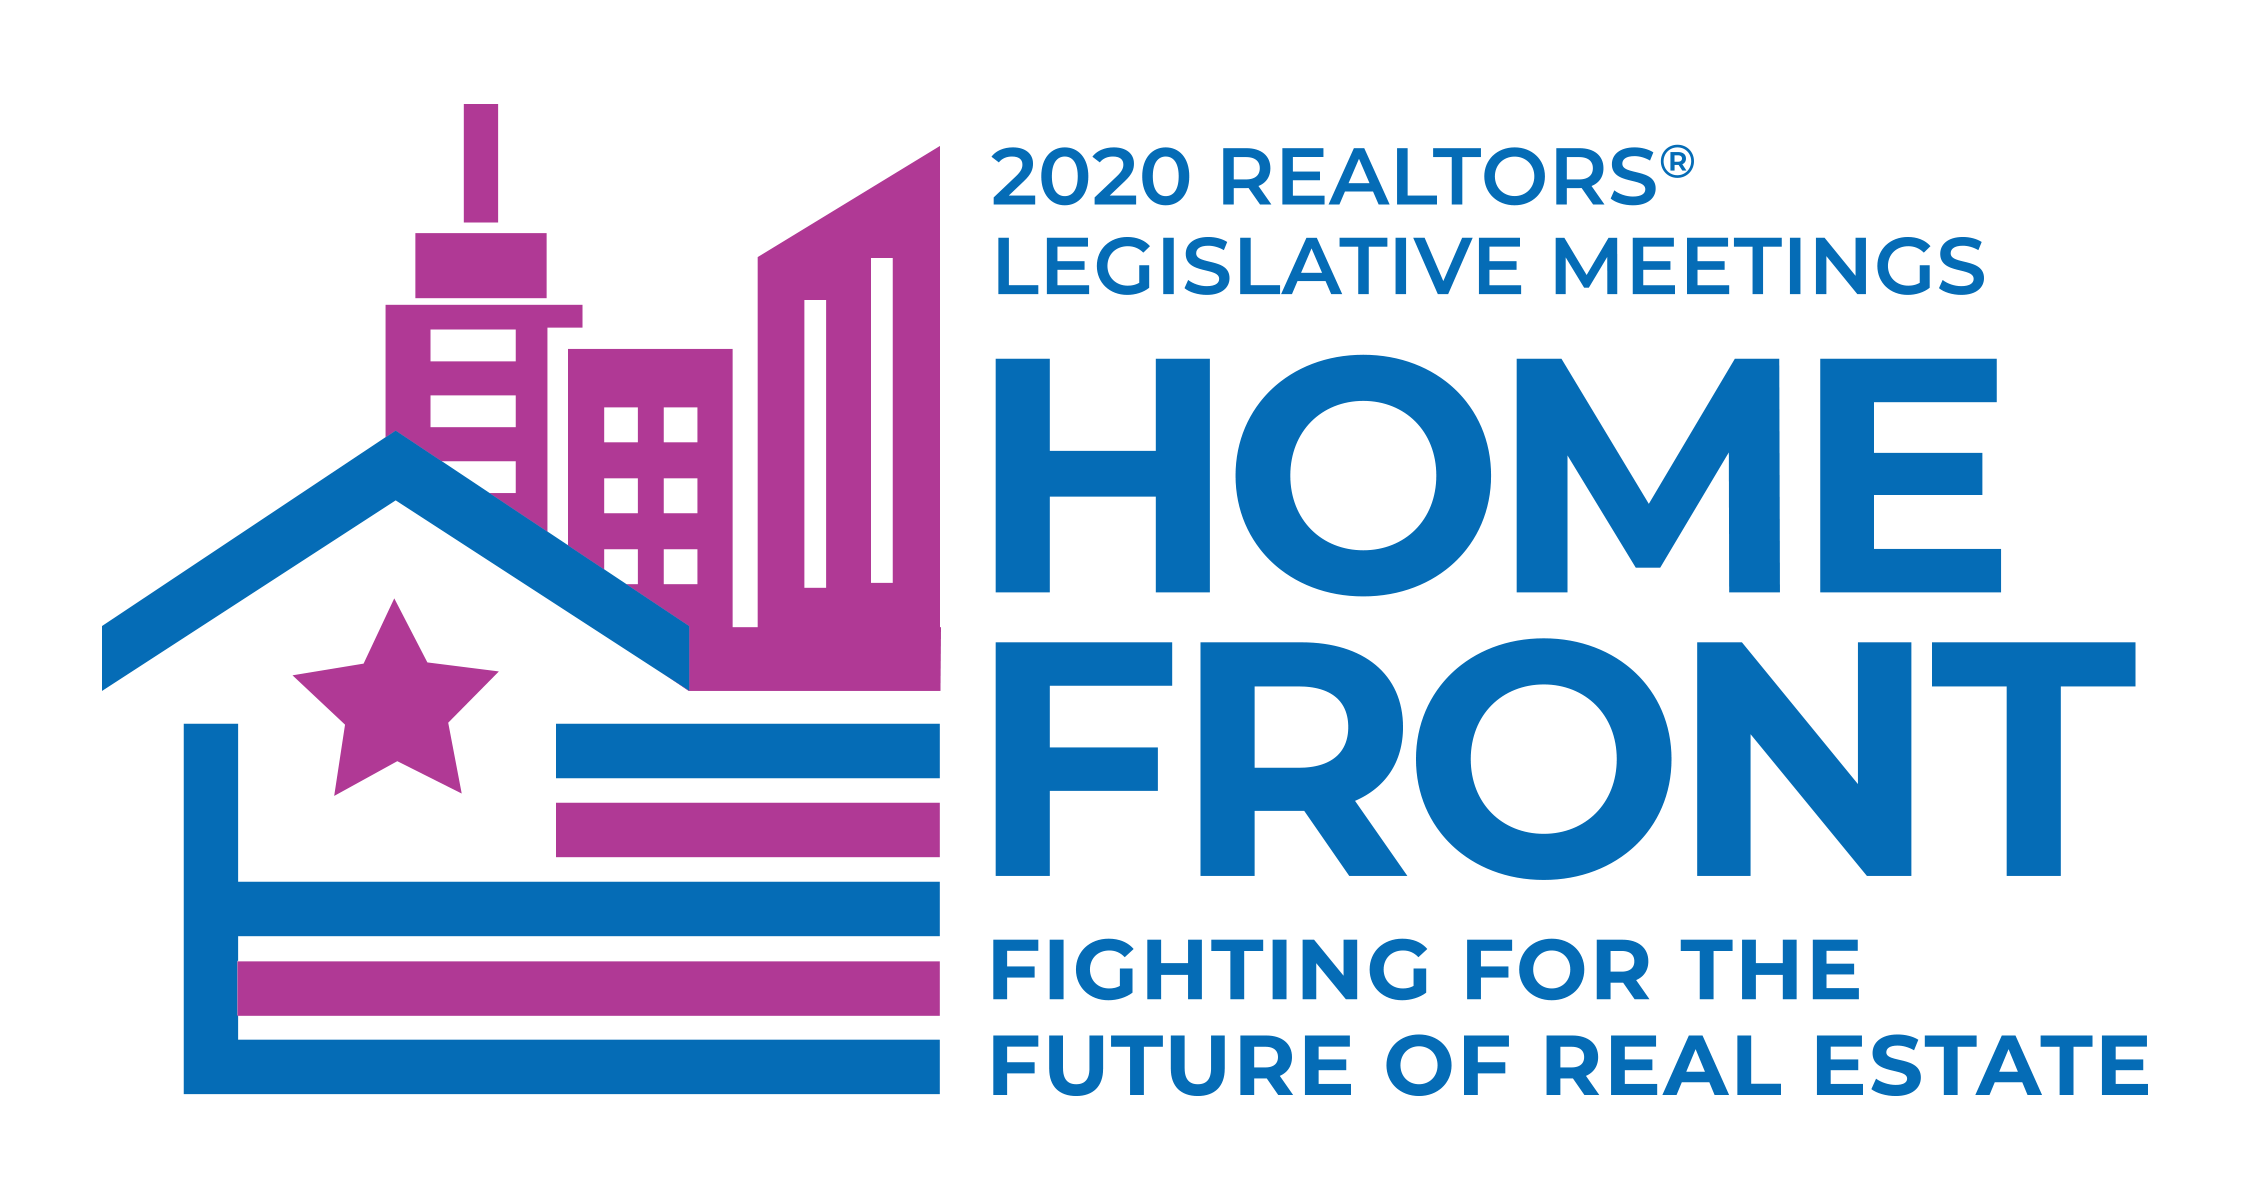 2020 REALTORS® Legislative Meetings Logo